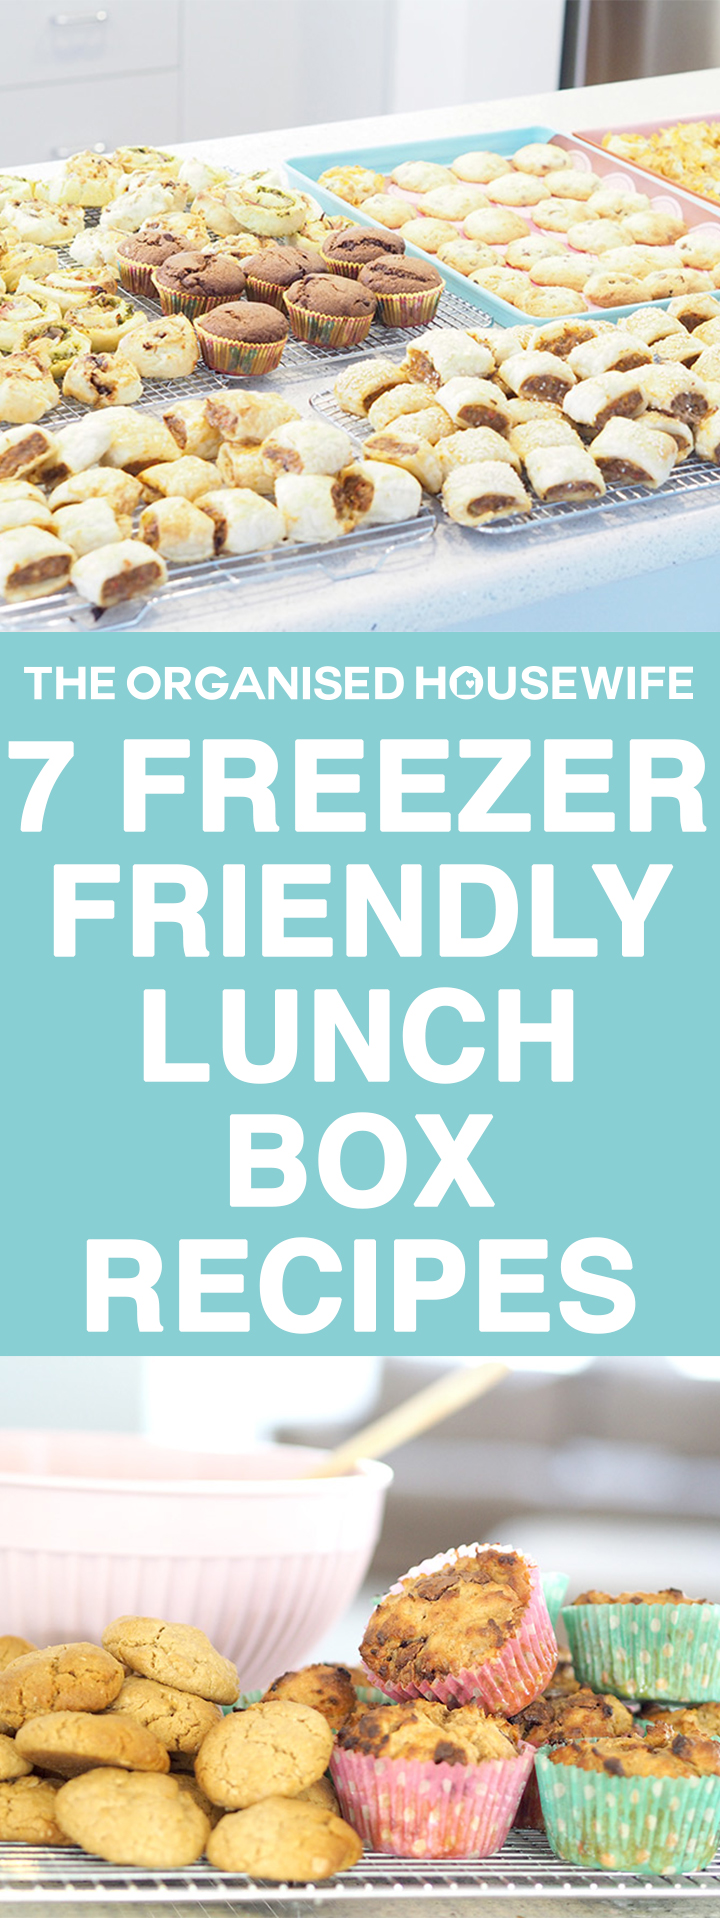 Towards the end of the school holidays I spend a few hours doing a big bake up of Freezer Friendly Lunch Box Recipes so the kids have snacks on hand to add to their school lunchboxes. I find this really helpful as some weekends I don't have time to bake something new for the upcoming week.